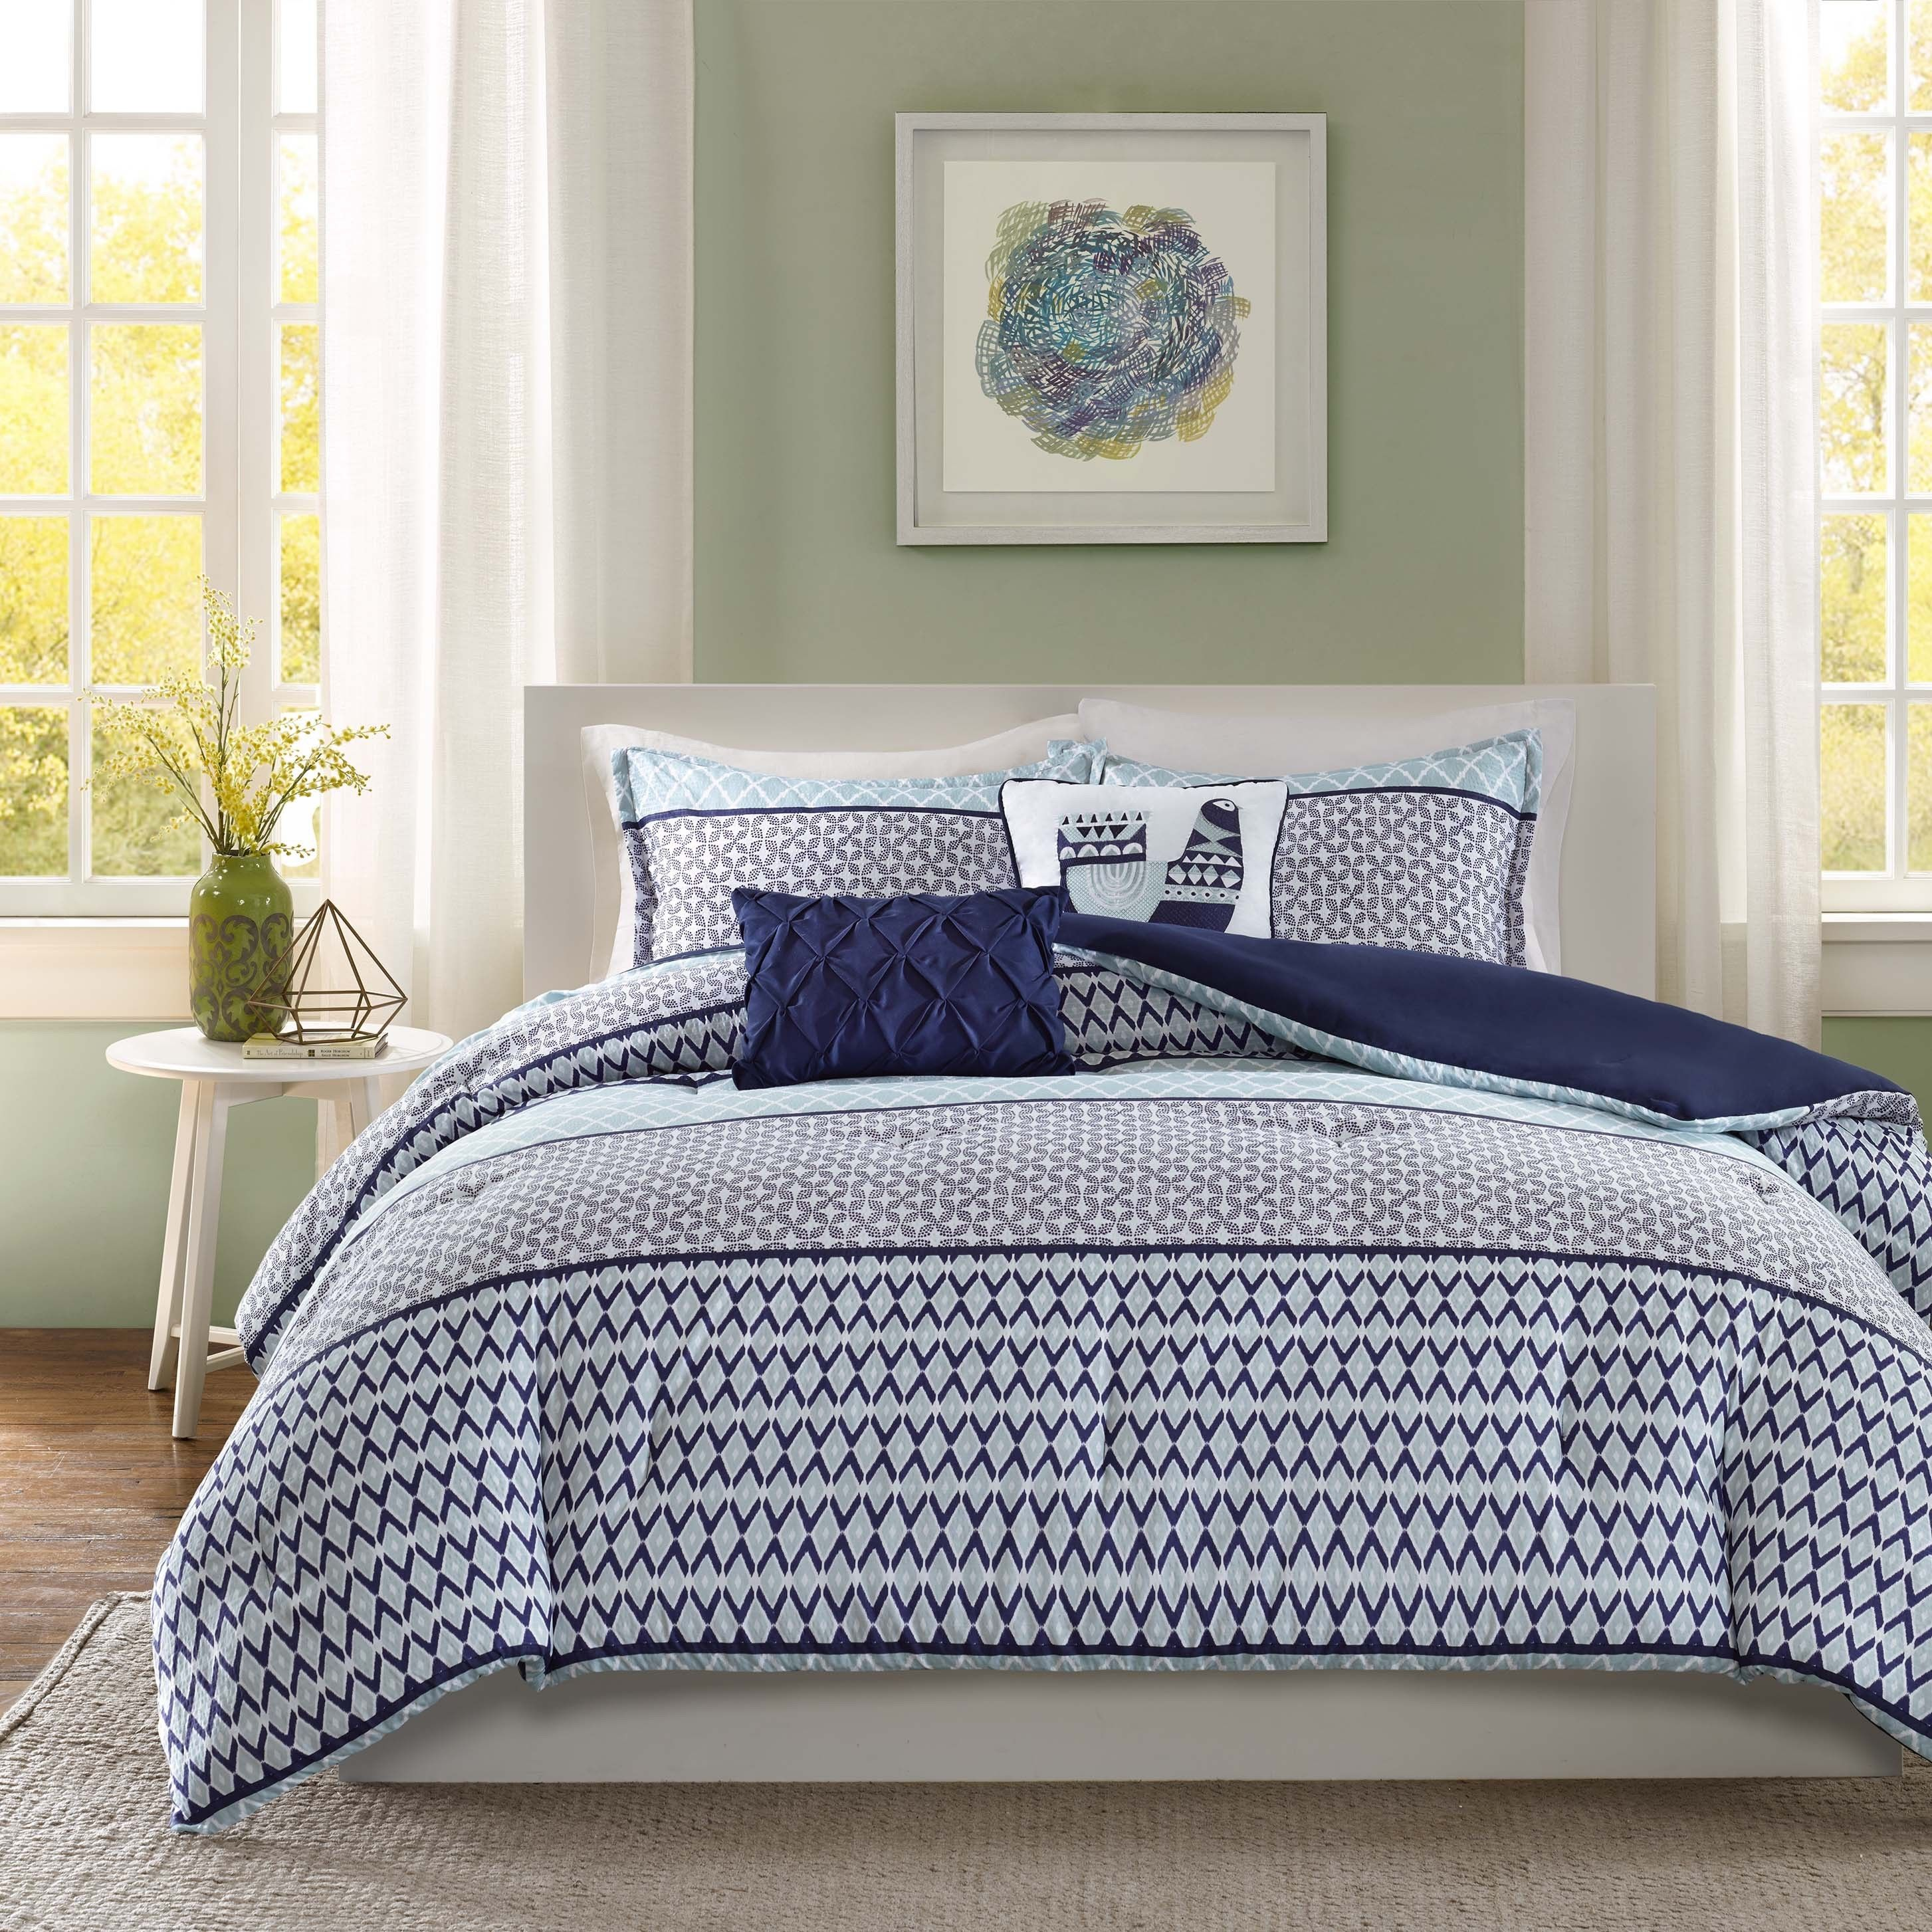 com bed park bedding product shipping lafayette orders on madison set overstock grey free comforter bath